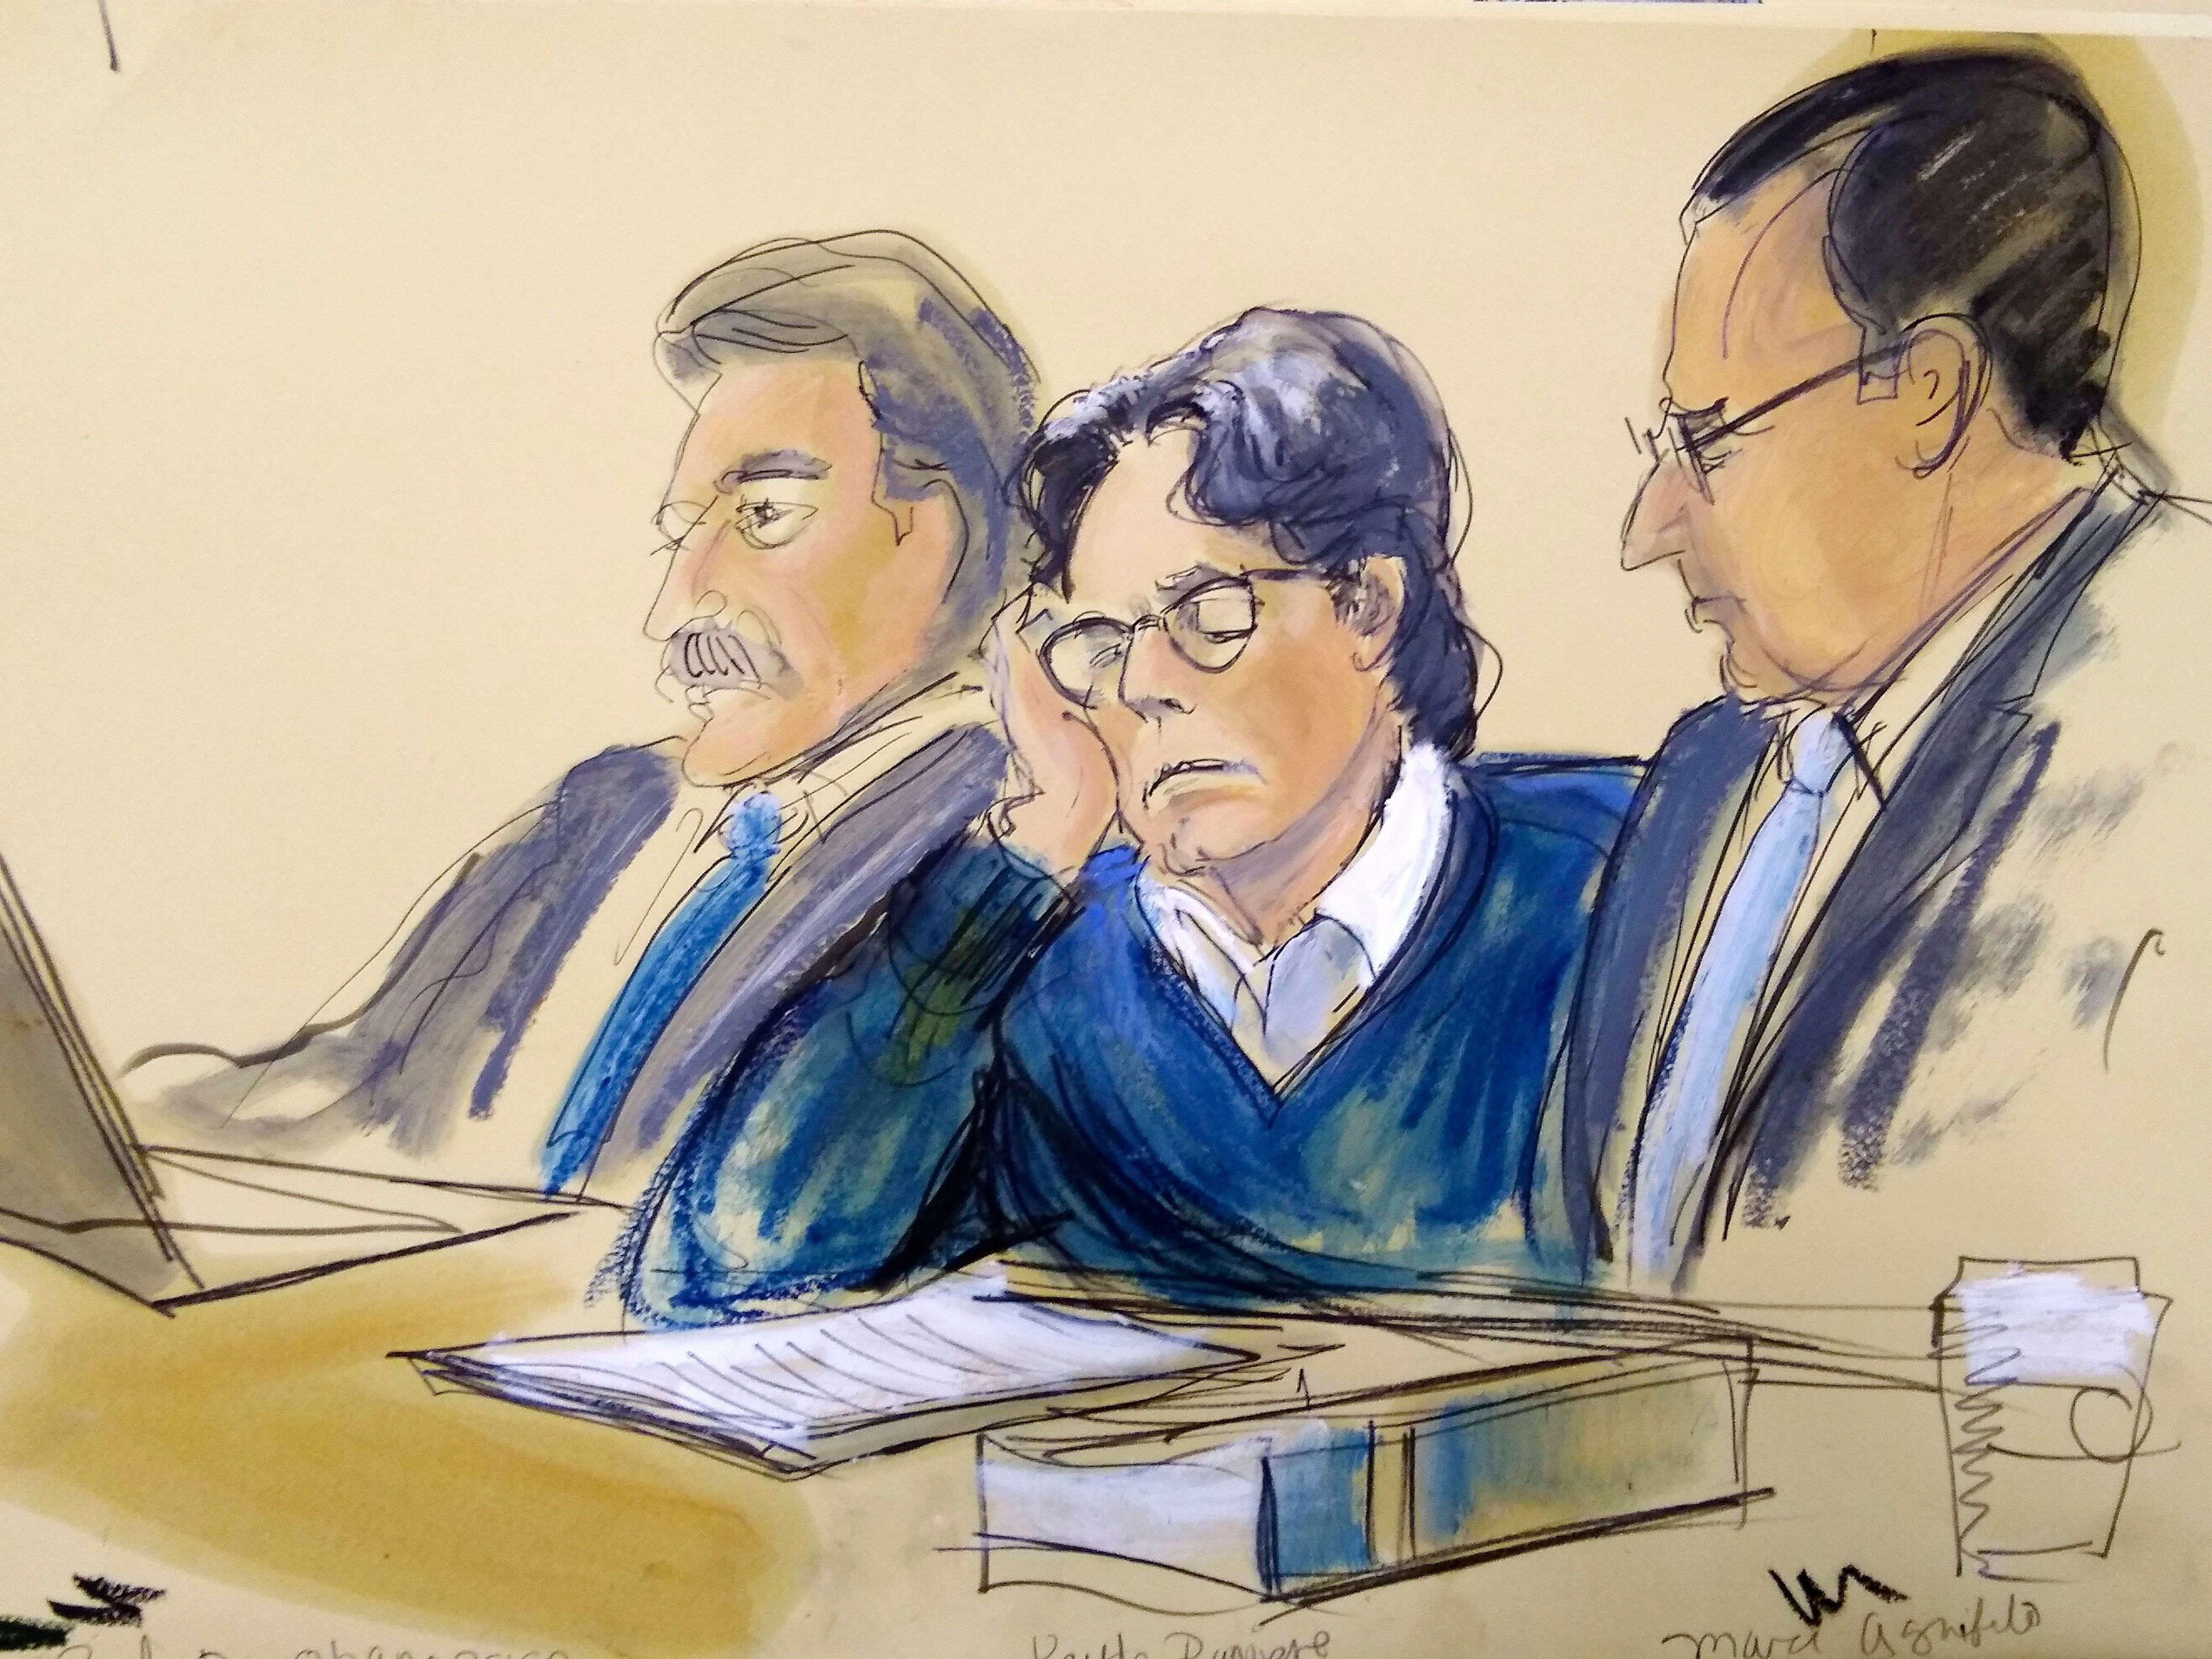 Seagram's Heiress Clare Bronfman Sentenced In Nxivm Sex-Trafficking Scheme Involving Actresses – Update